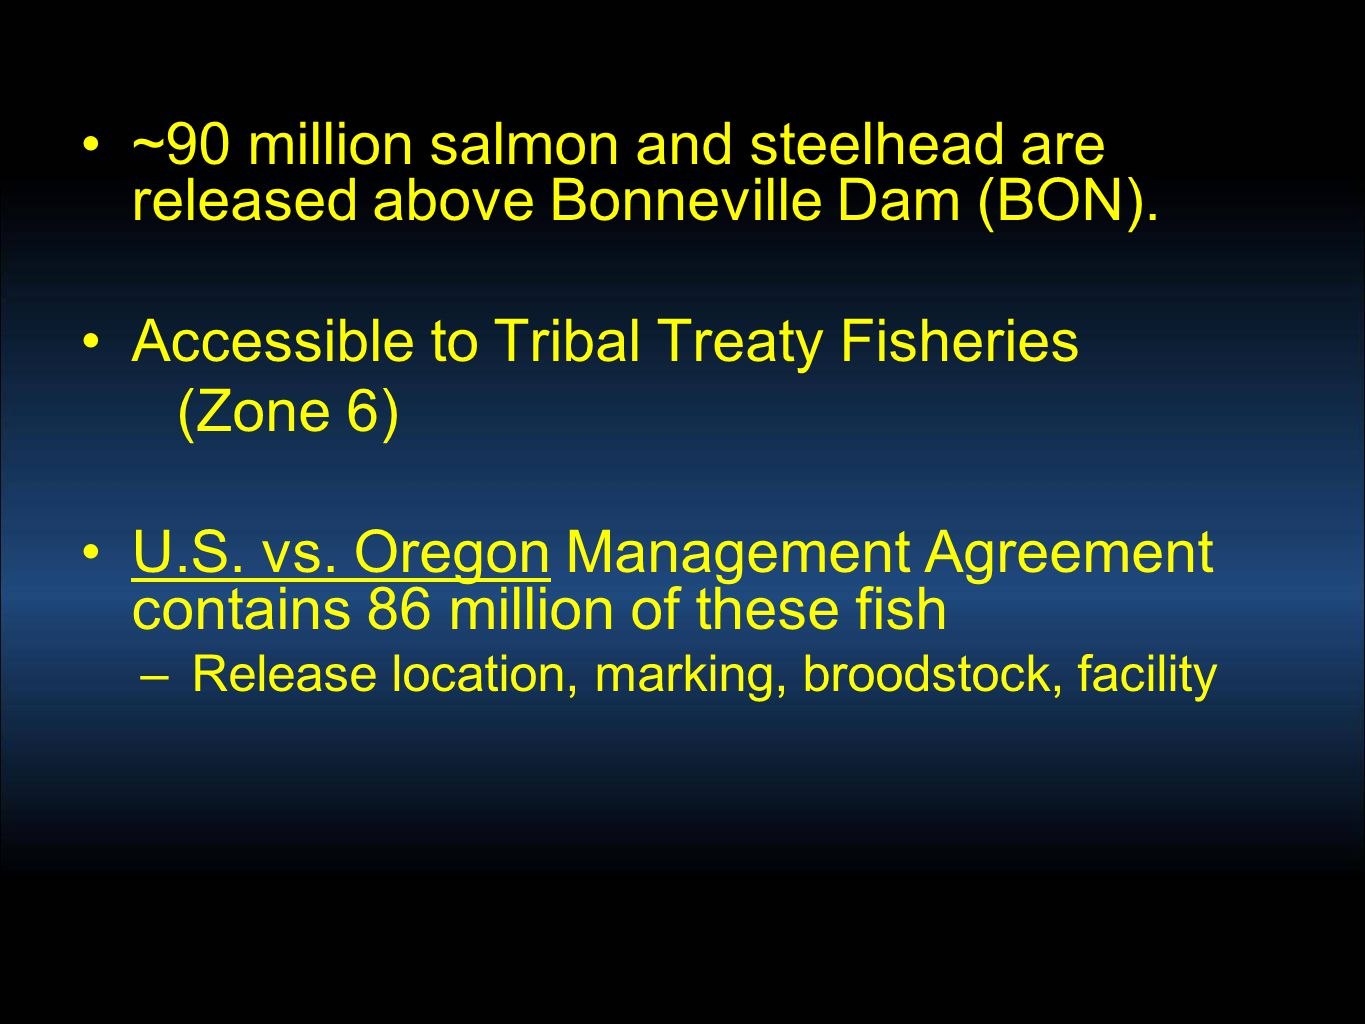 ~90 million salmon and steelhead are released above Bonneville Dam (BON). Accessible to Tribal Treaty Fisheries (Zone 6) U.S. vs. Oregon Management Ag